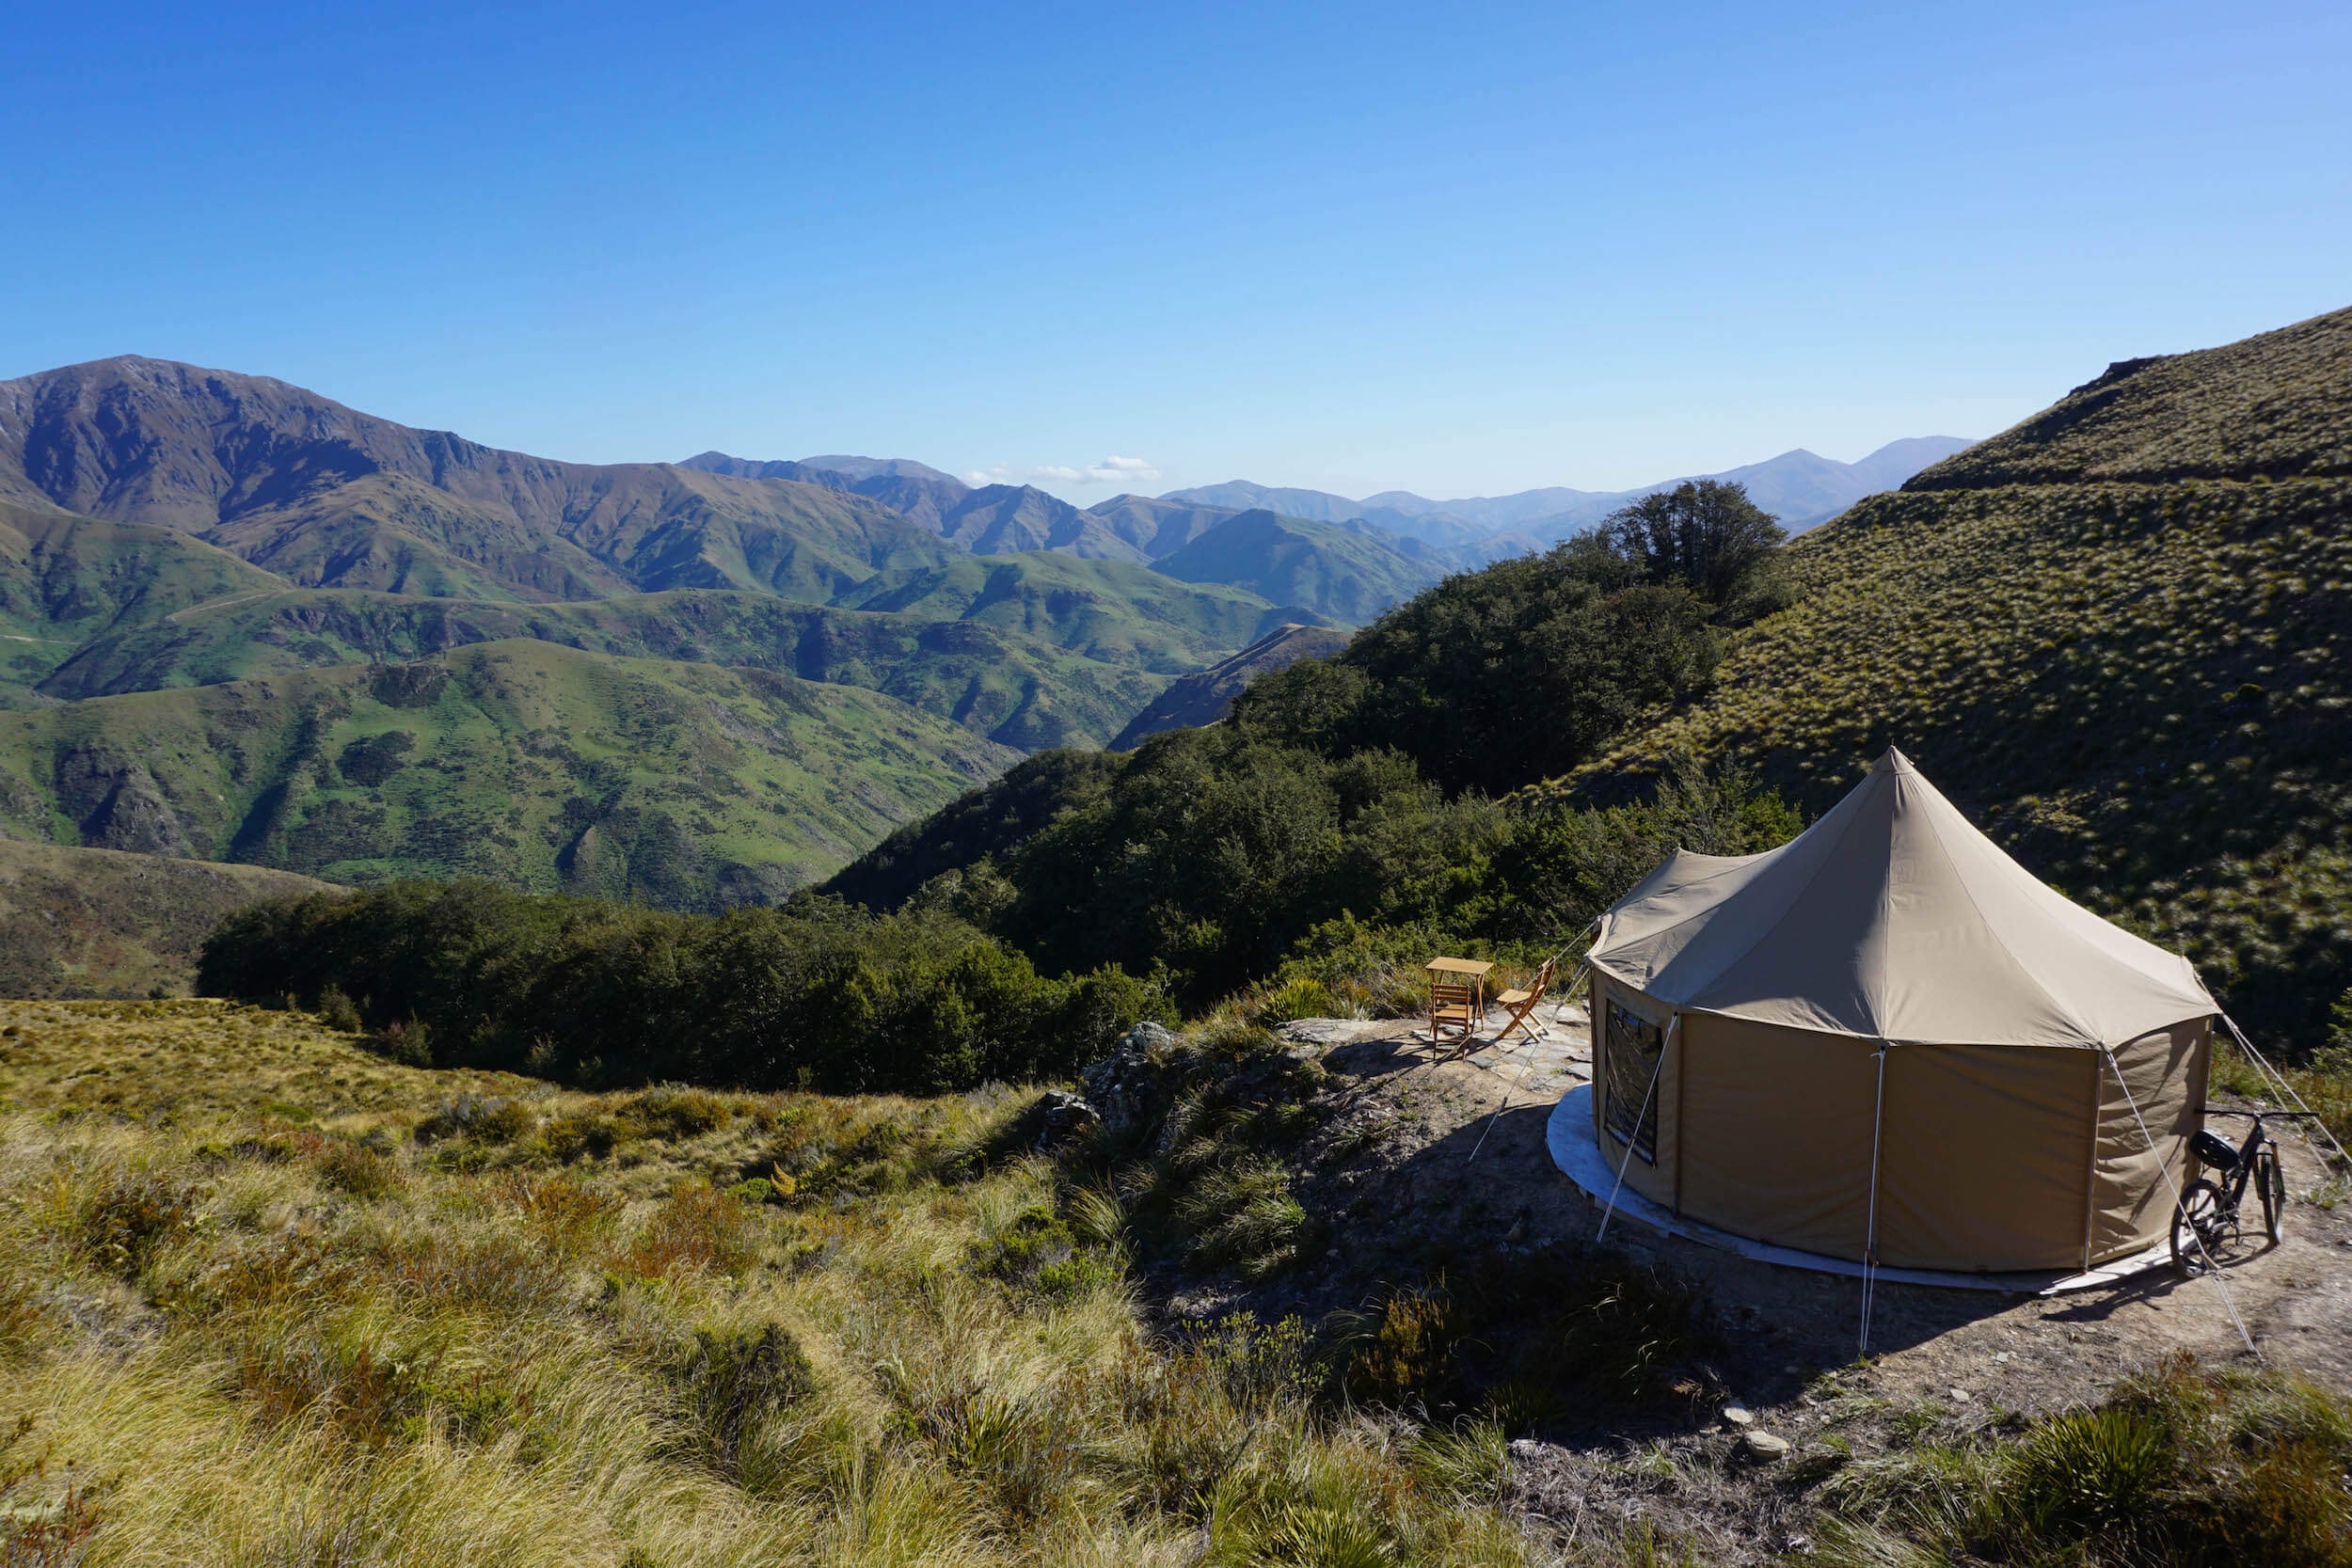 THE TENT. SUCH AN AWESOME SPOT, PERCHED UP ABOVE THE NOKOMAI VALLEY